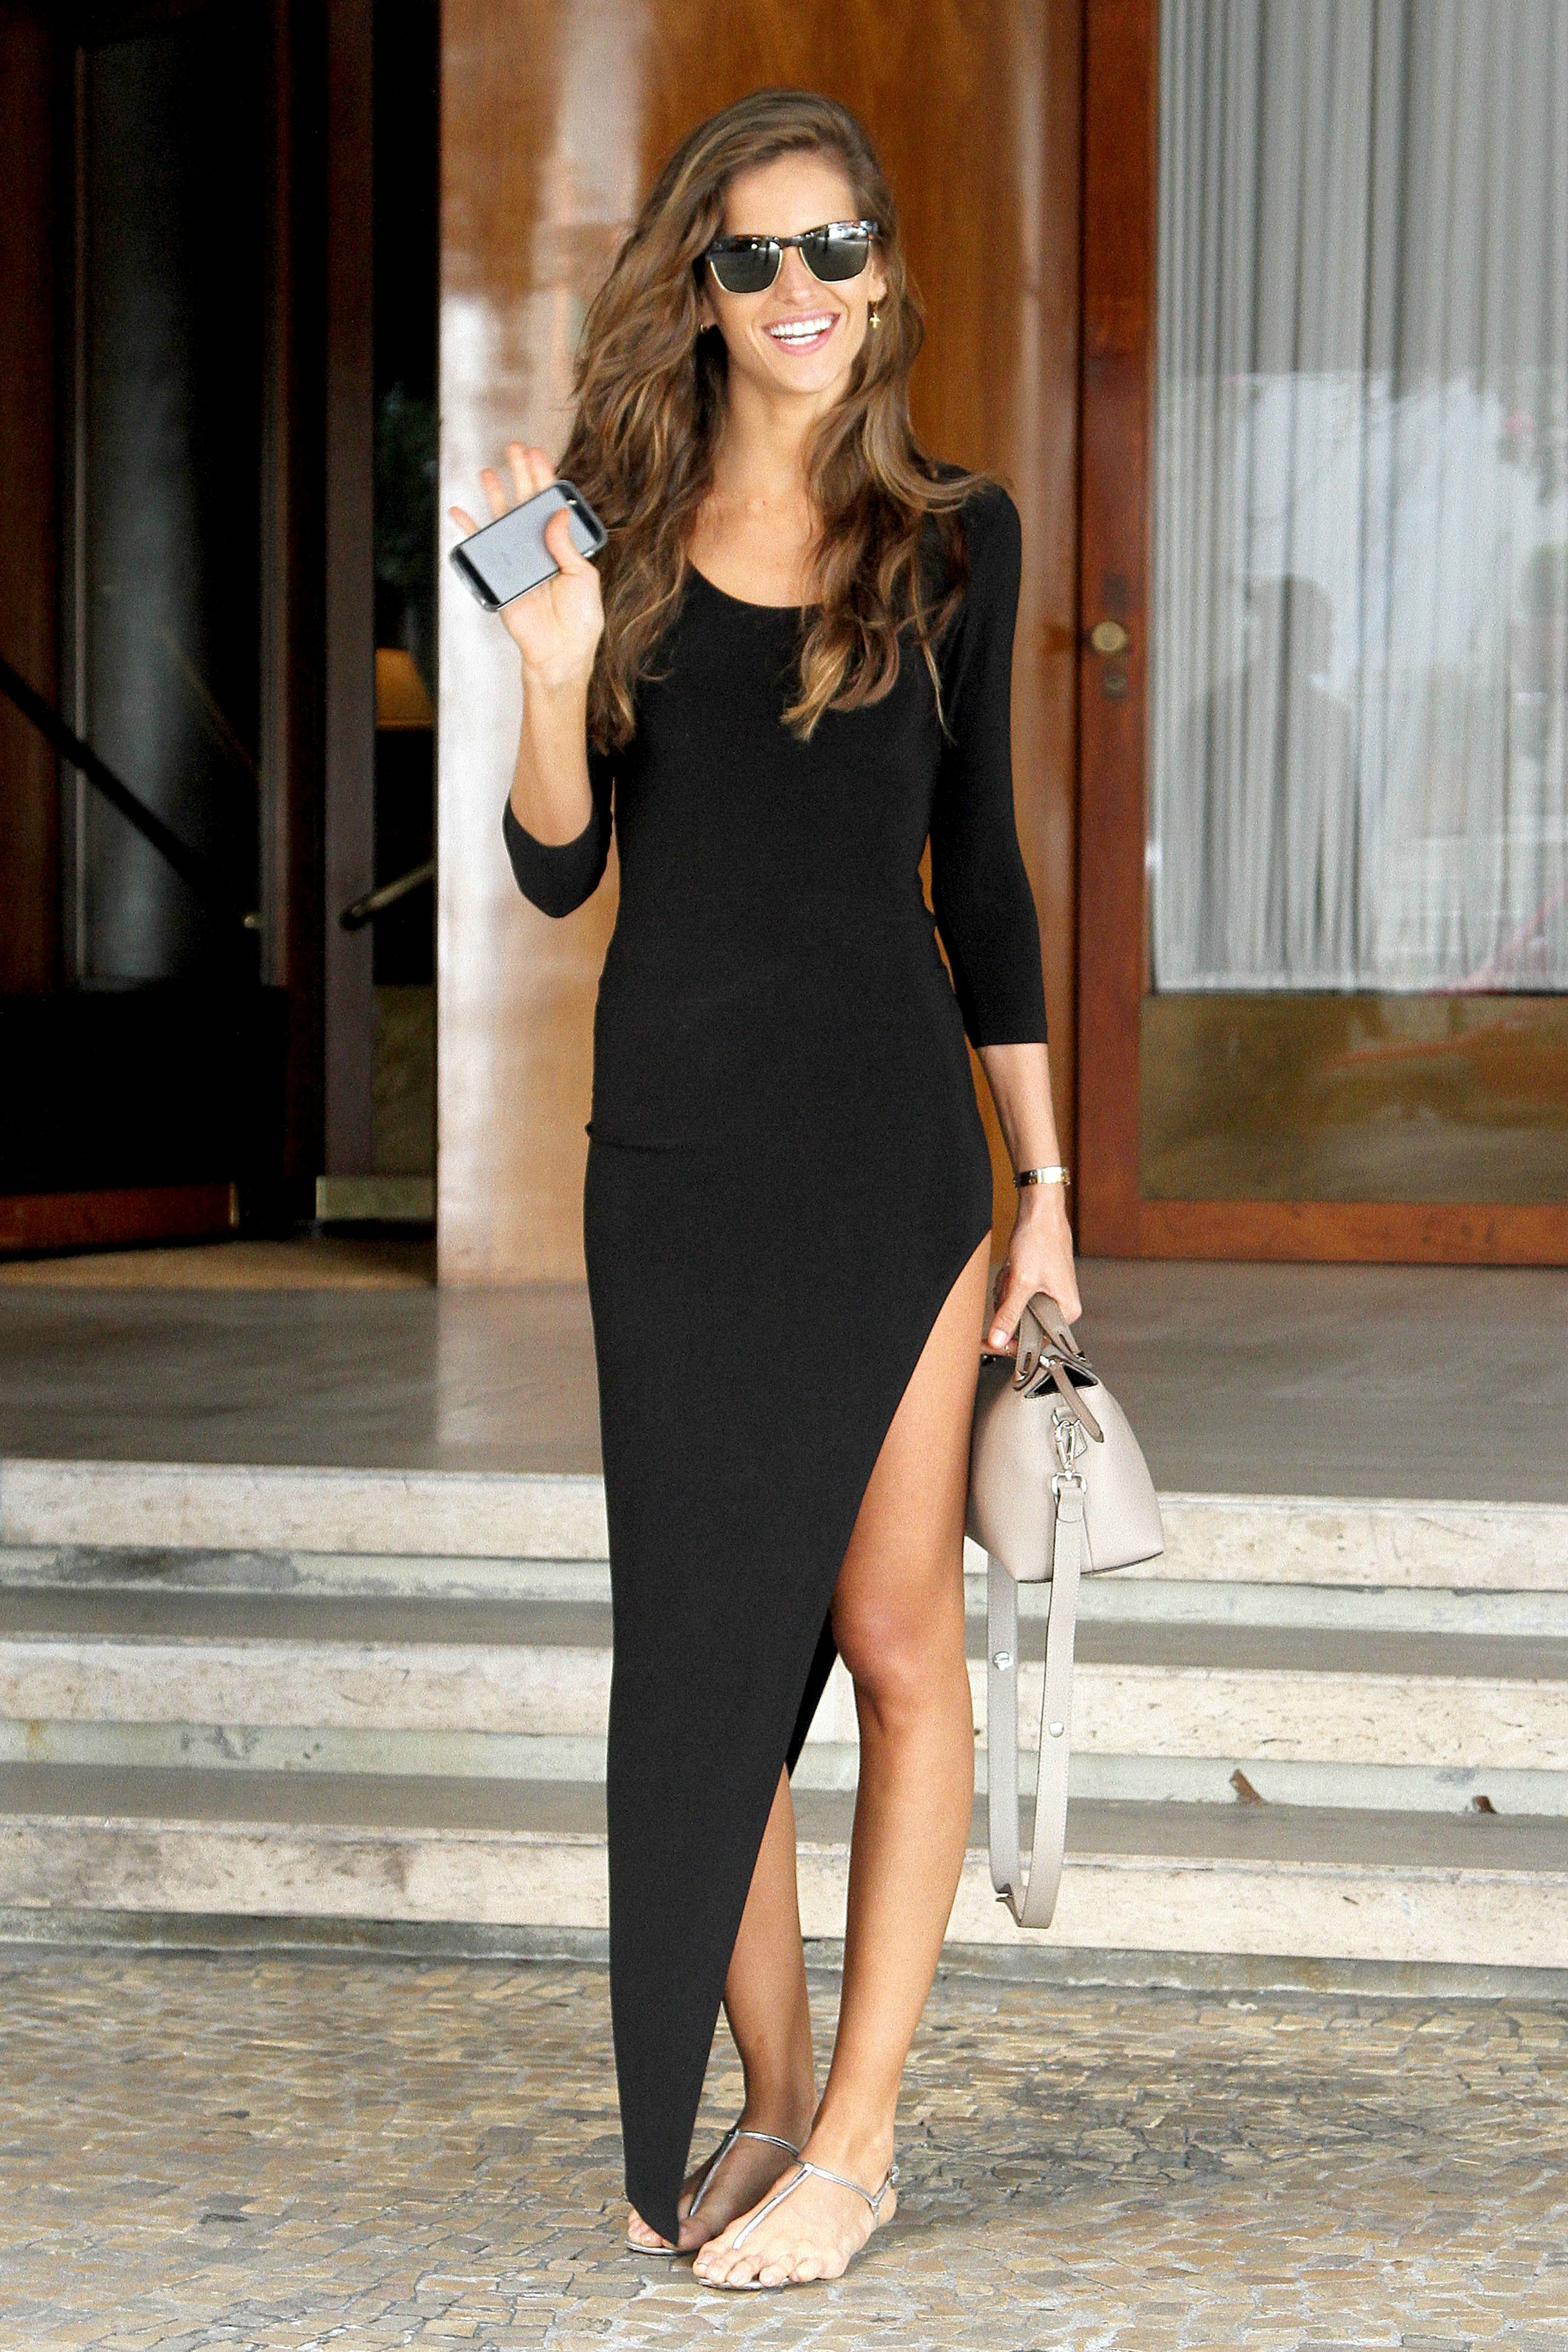 Izabel goulart spotted outside hotel in sao paulo hello color